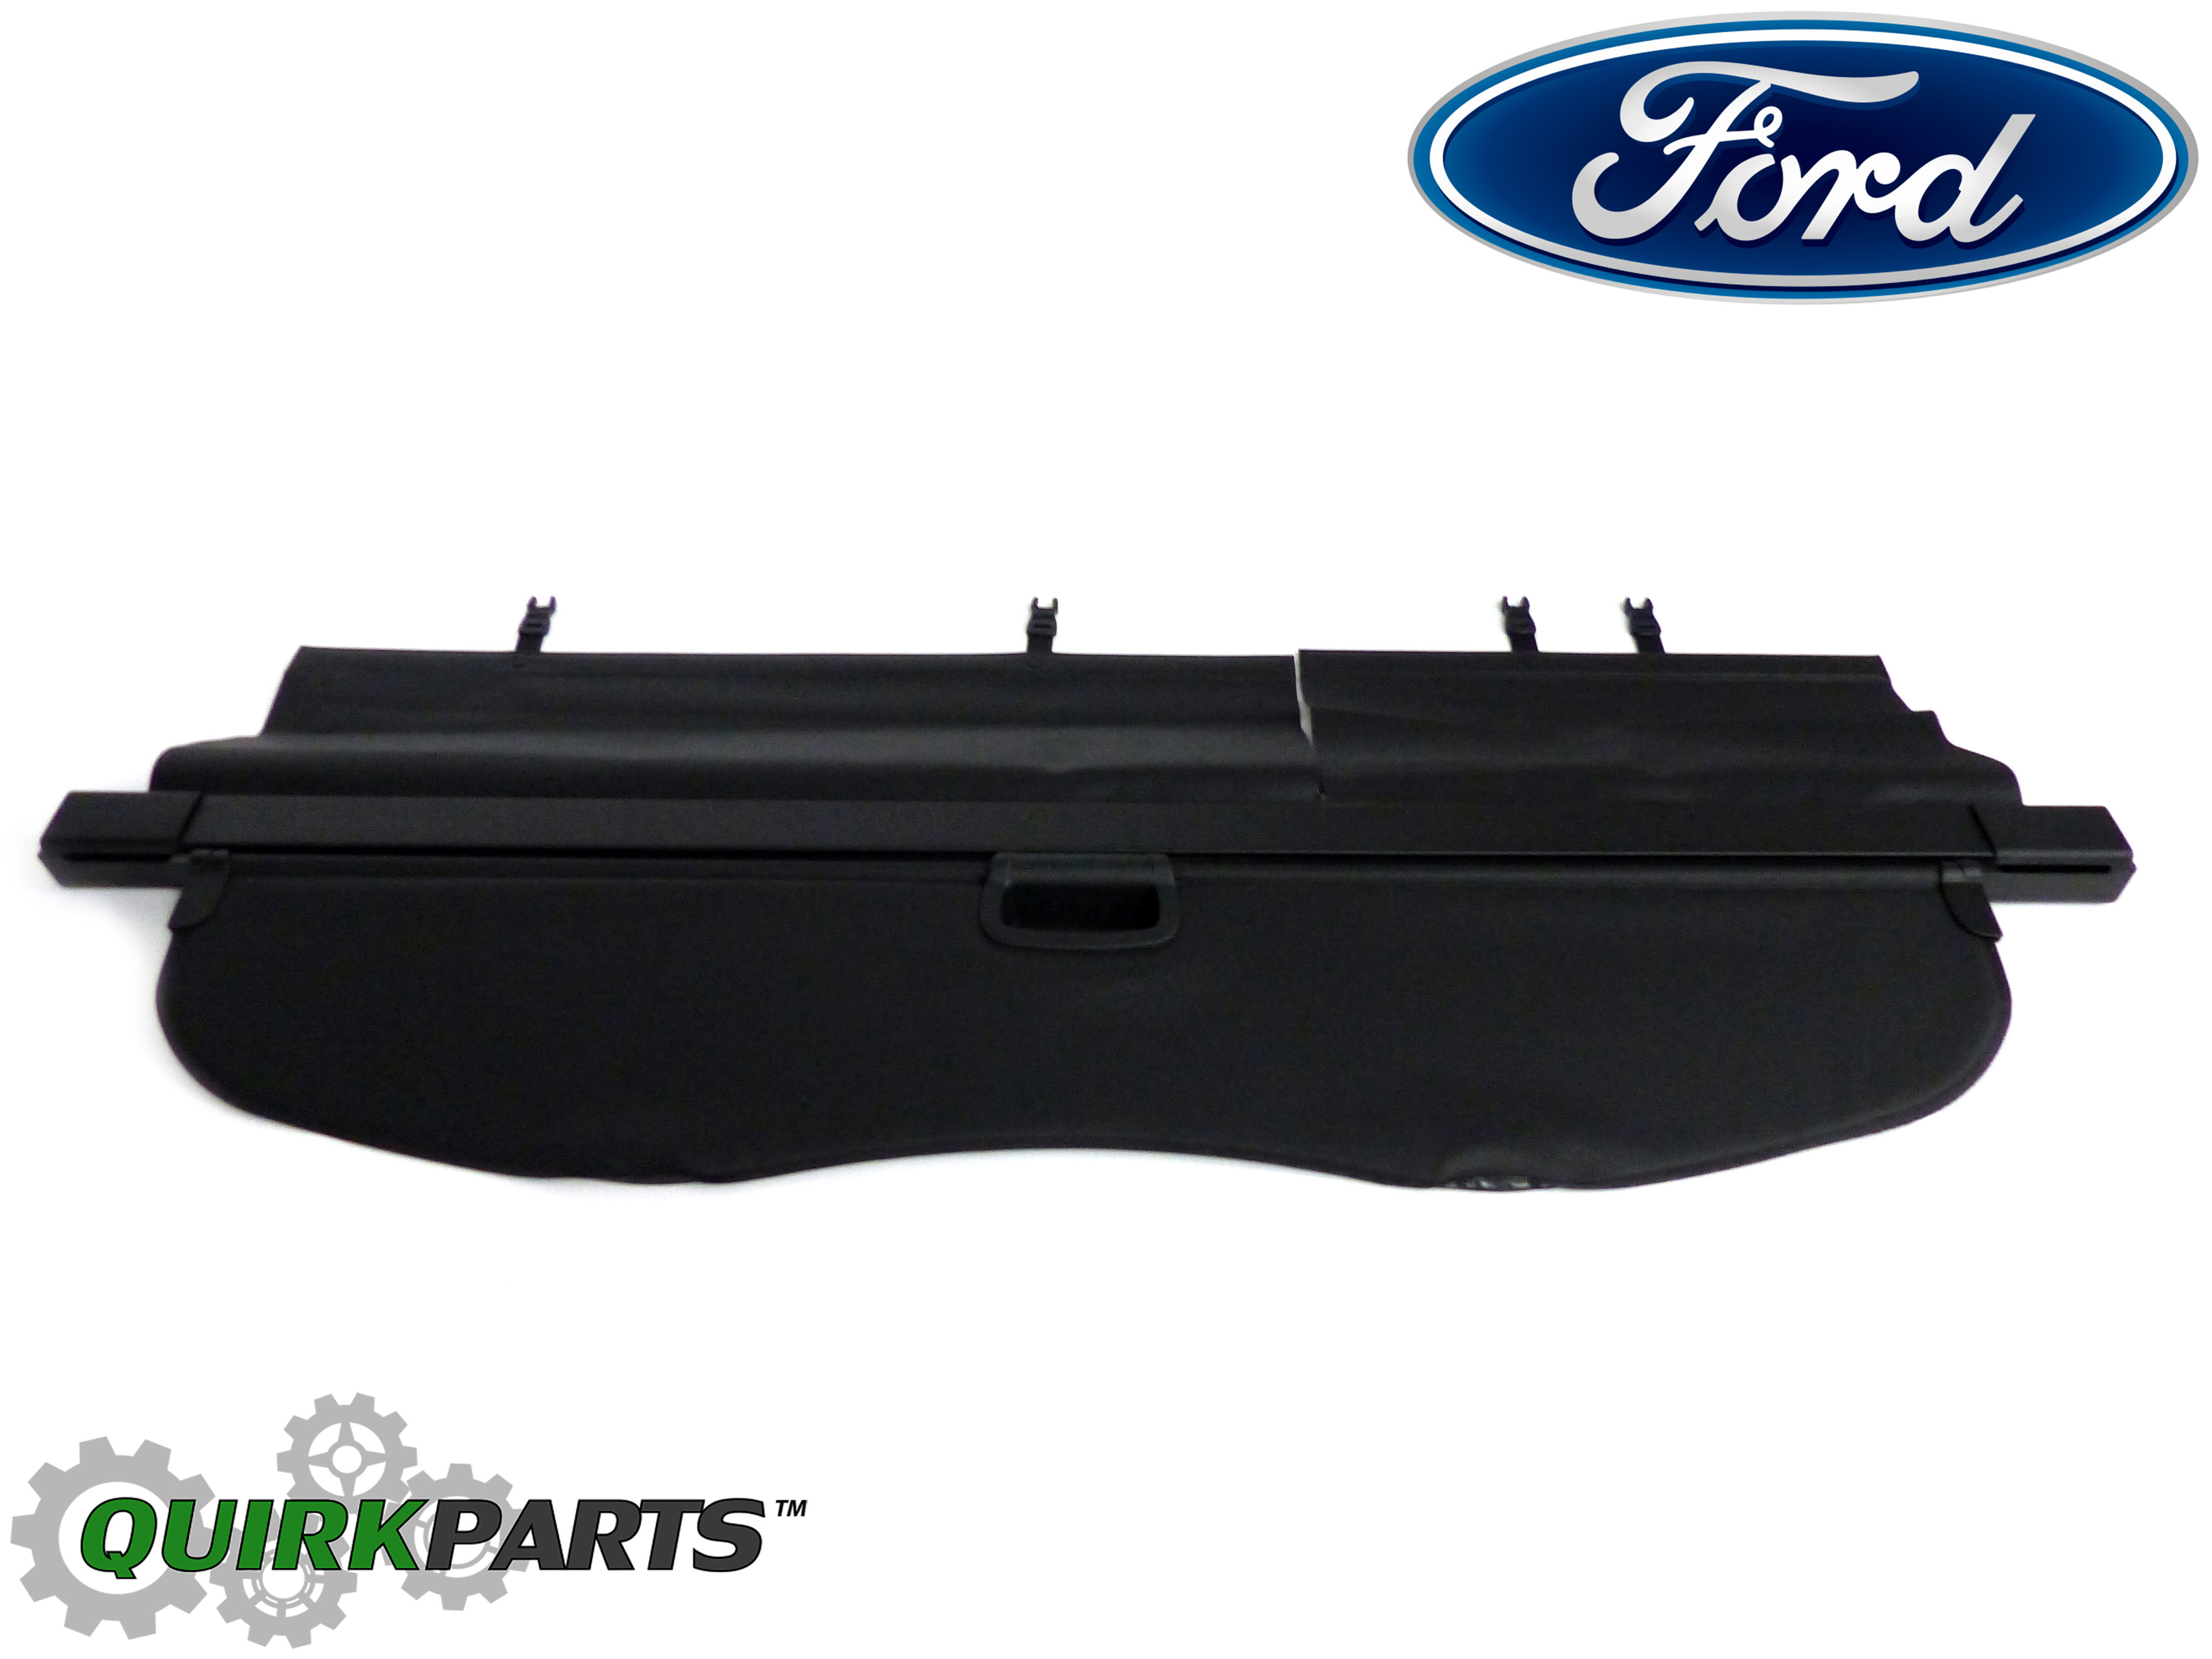 Oem Ford Edge Cargo Cover Autos Post